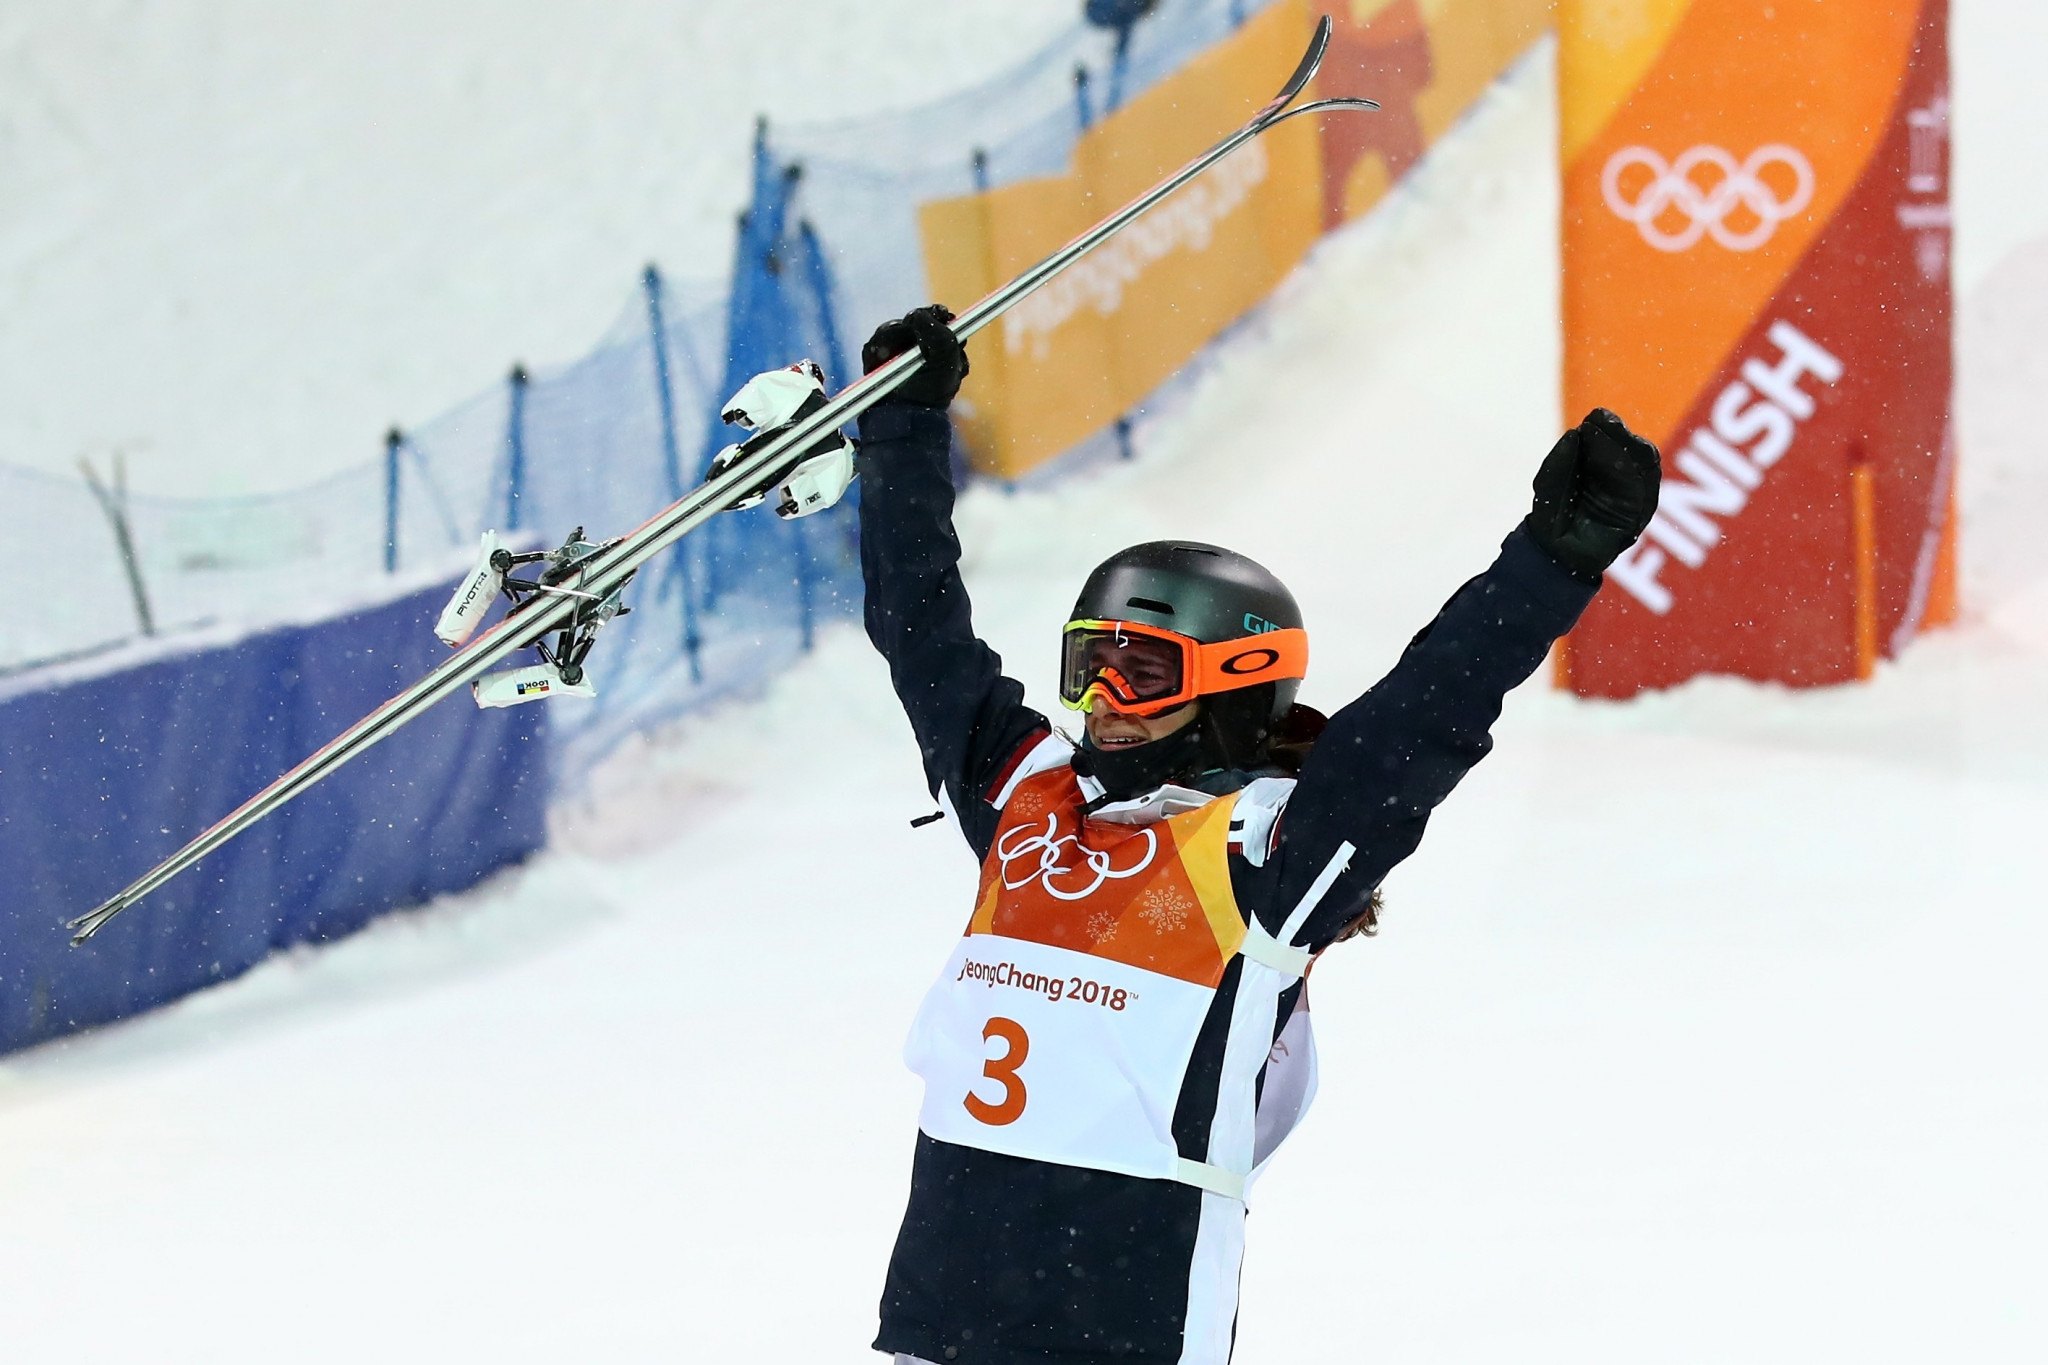 Laffont beats defending Olympic champion to win women's moguls gold at Pyeongchang 2018